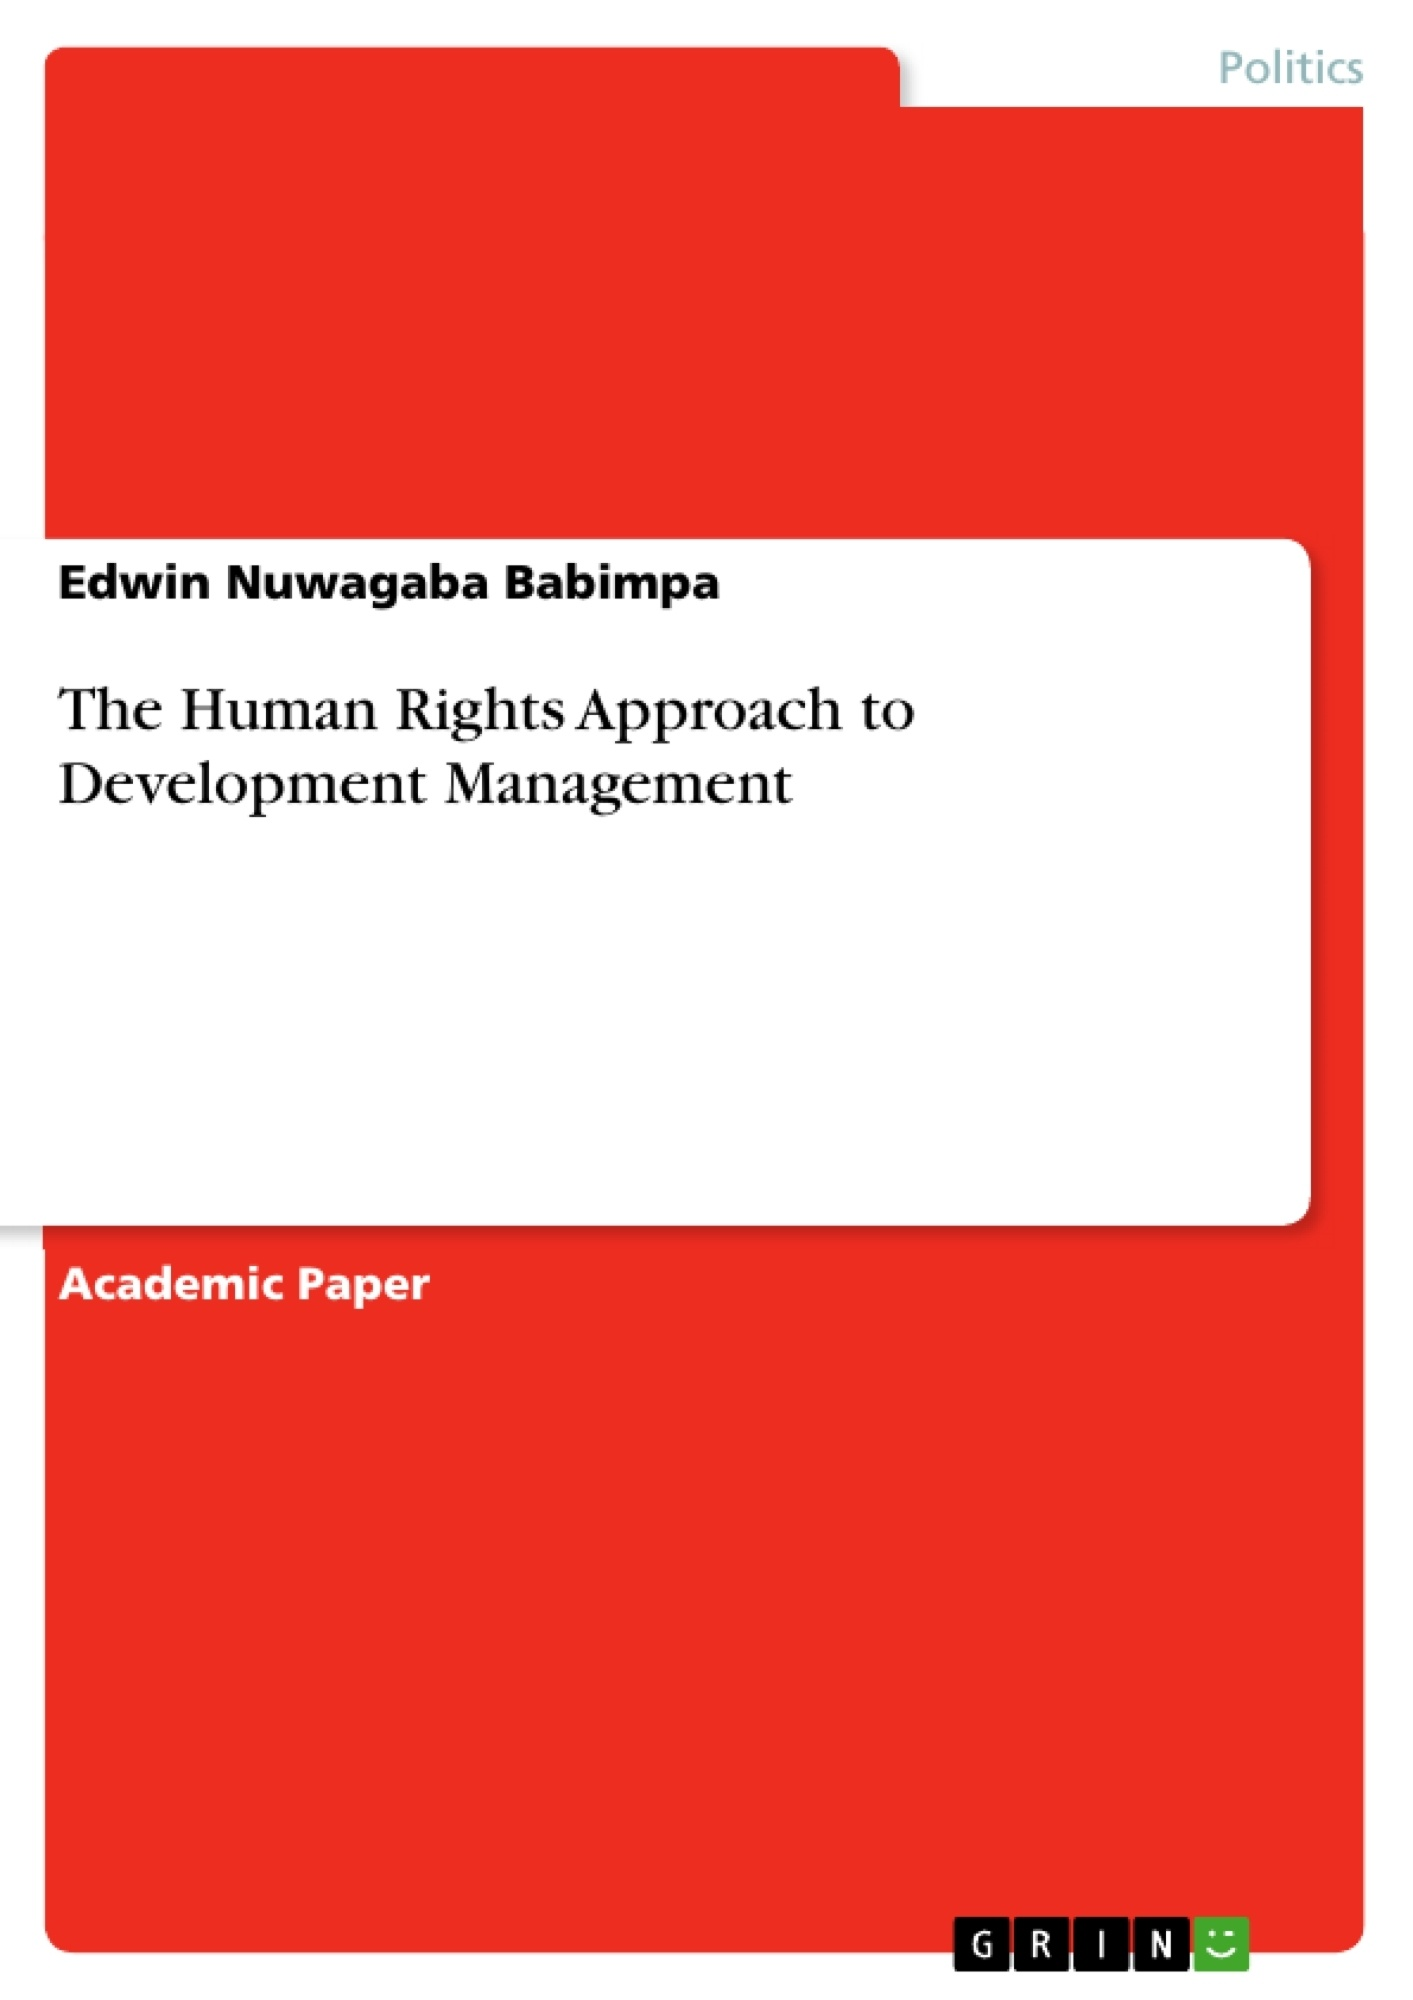 Title: The Human Rights Approach to Development Management